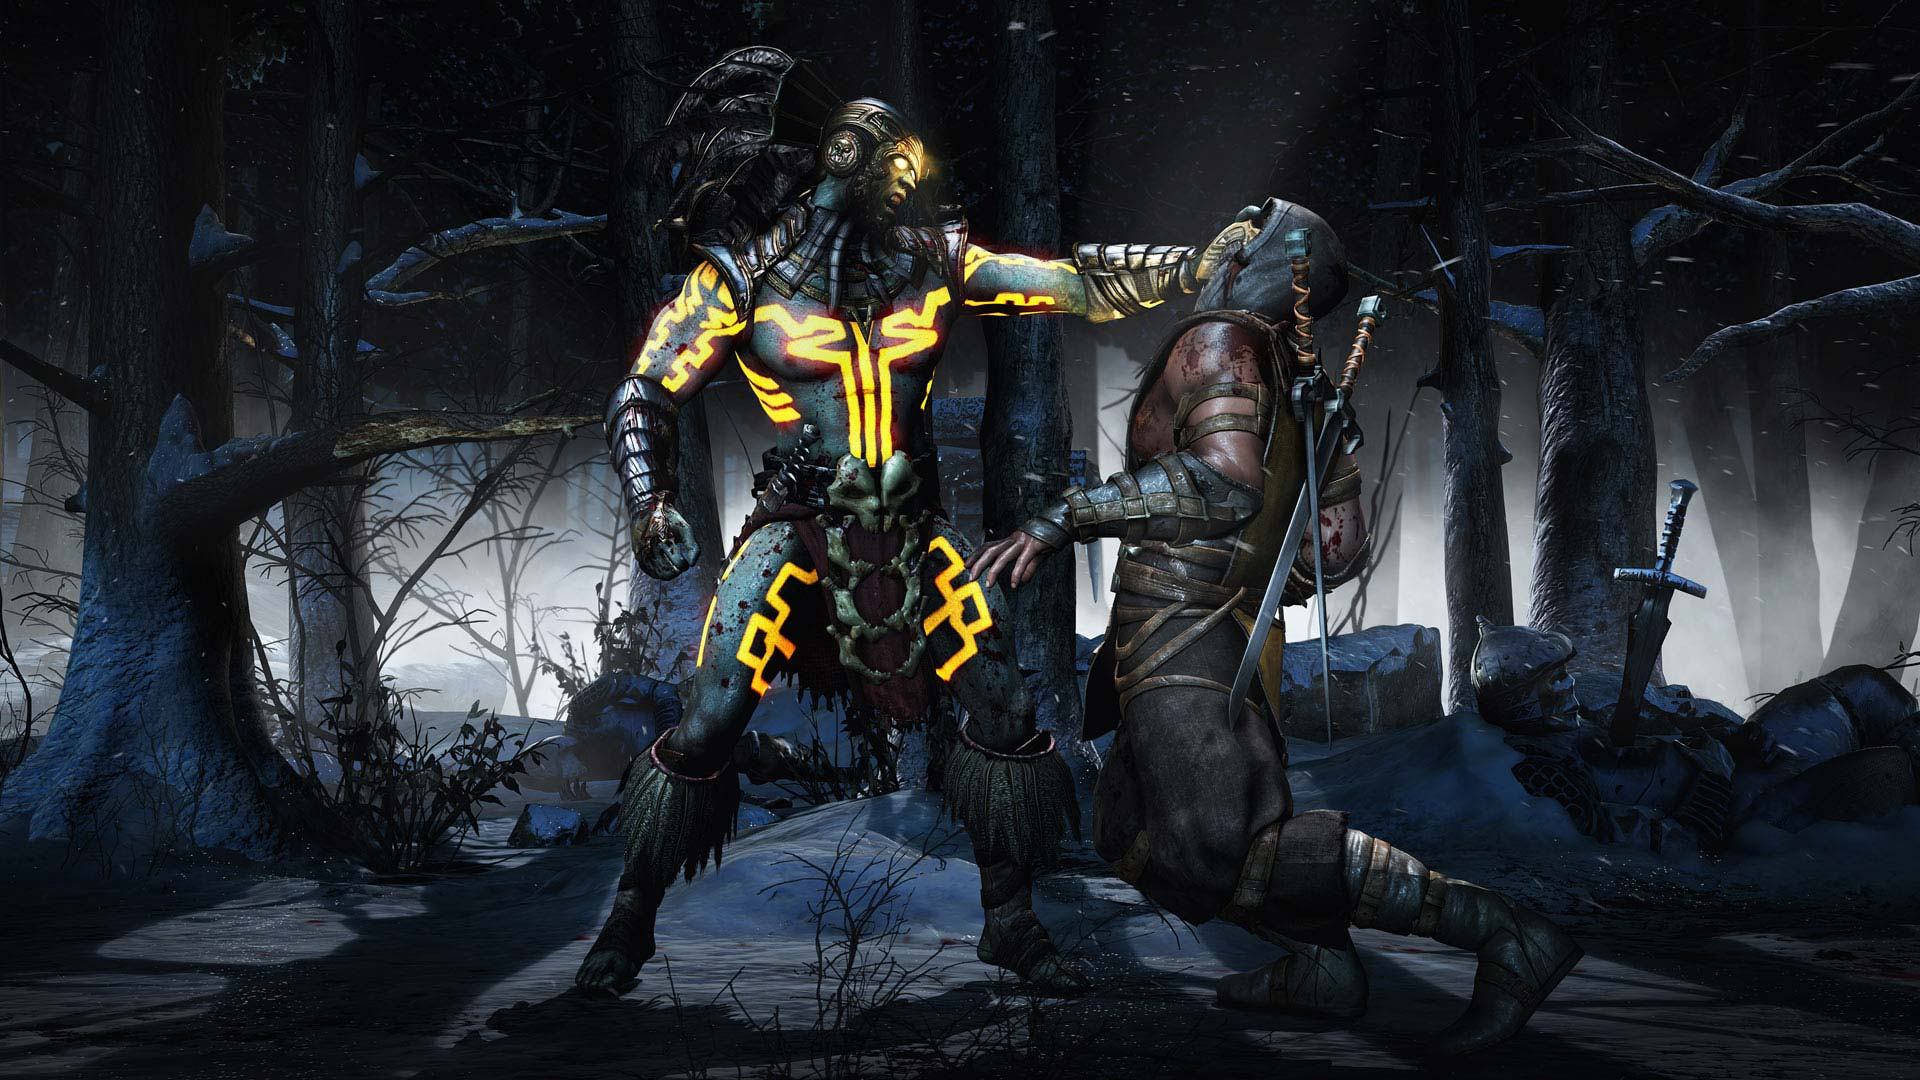 download mortal kombat xl complete edition collector's edition full version repack free for pc 2017 gratis cracked by 3dm reloaded codex